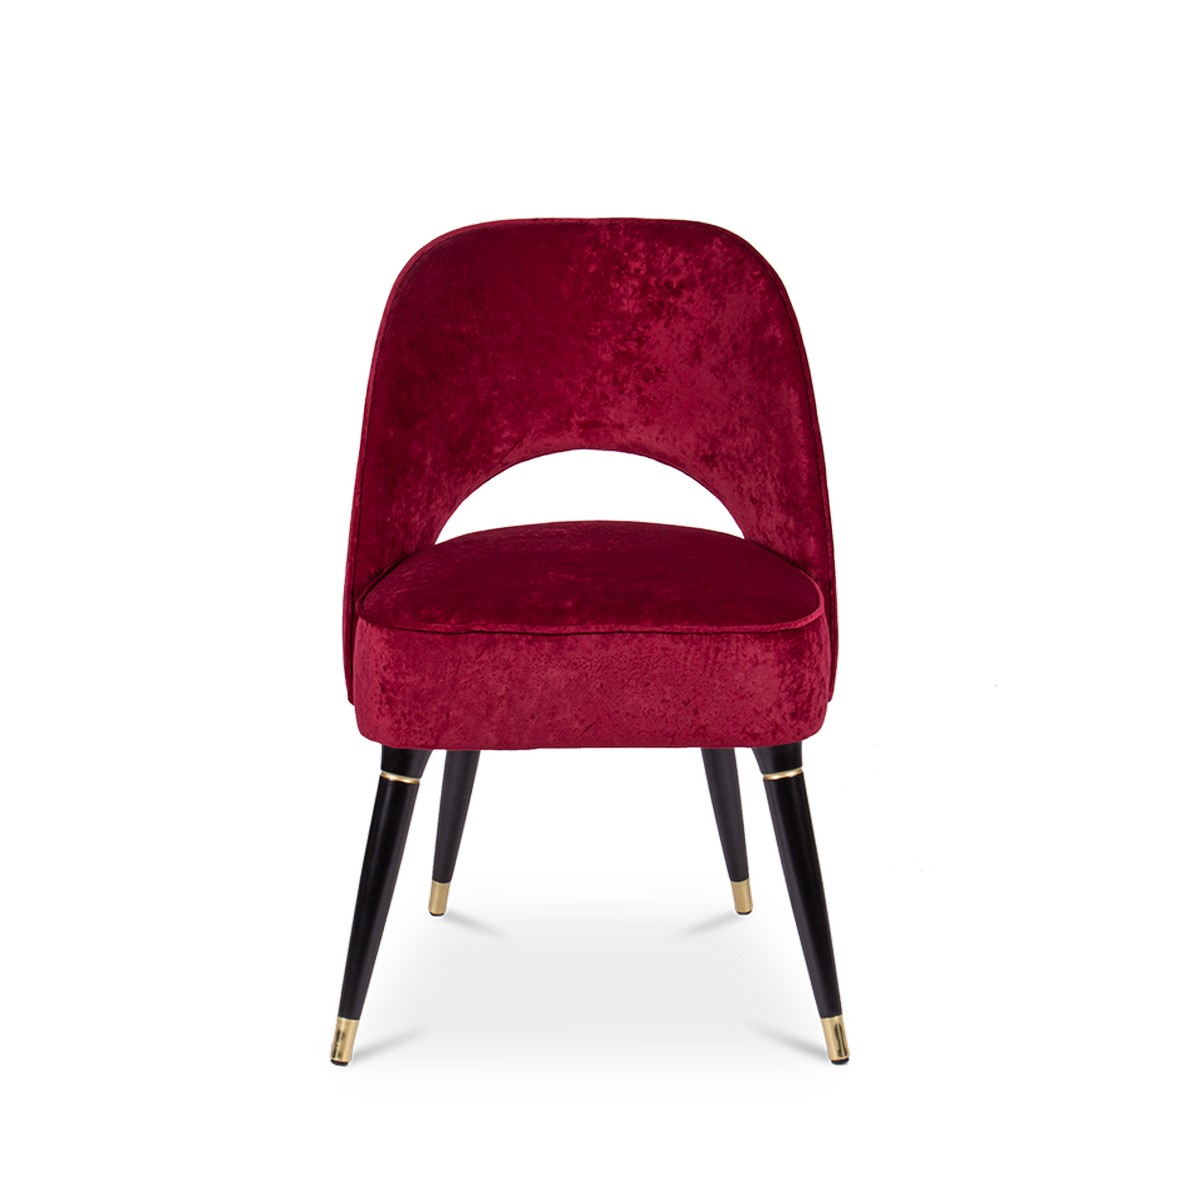 Top Velvet Dining Chairs velvet dining chairs Top Velvet Dining Chairs collins 1